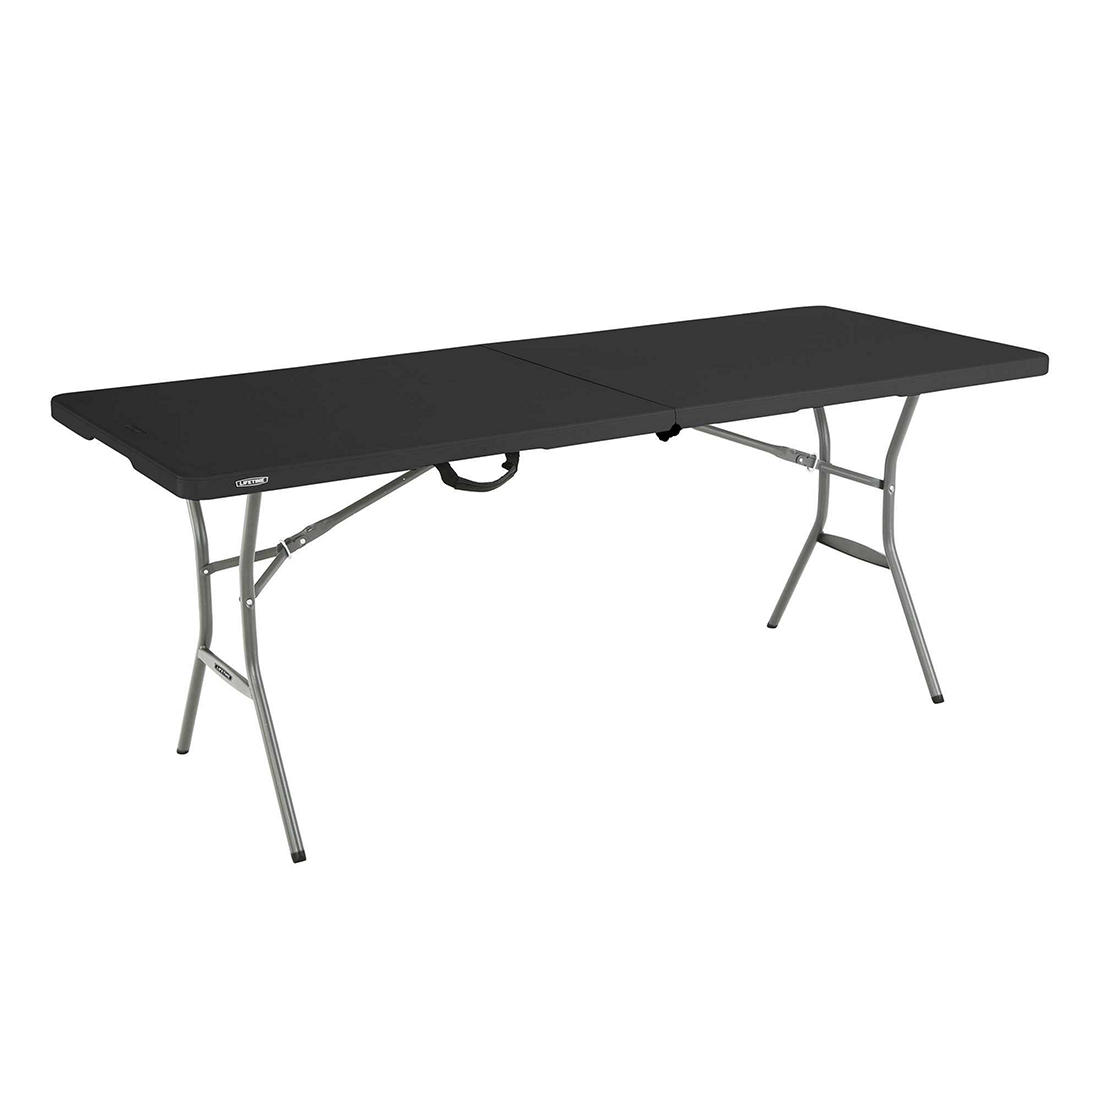 Lifetime 6 Light Commercial Fold In Half Table Black